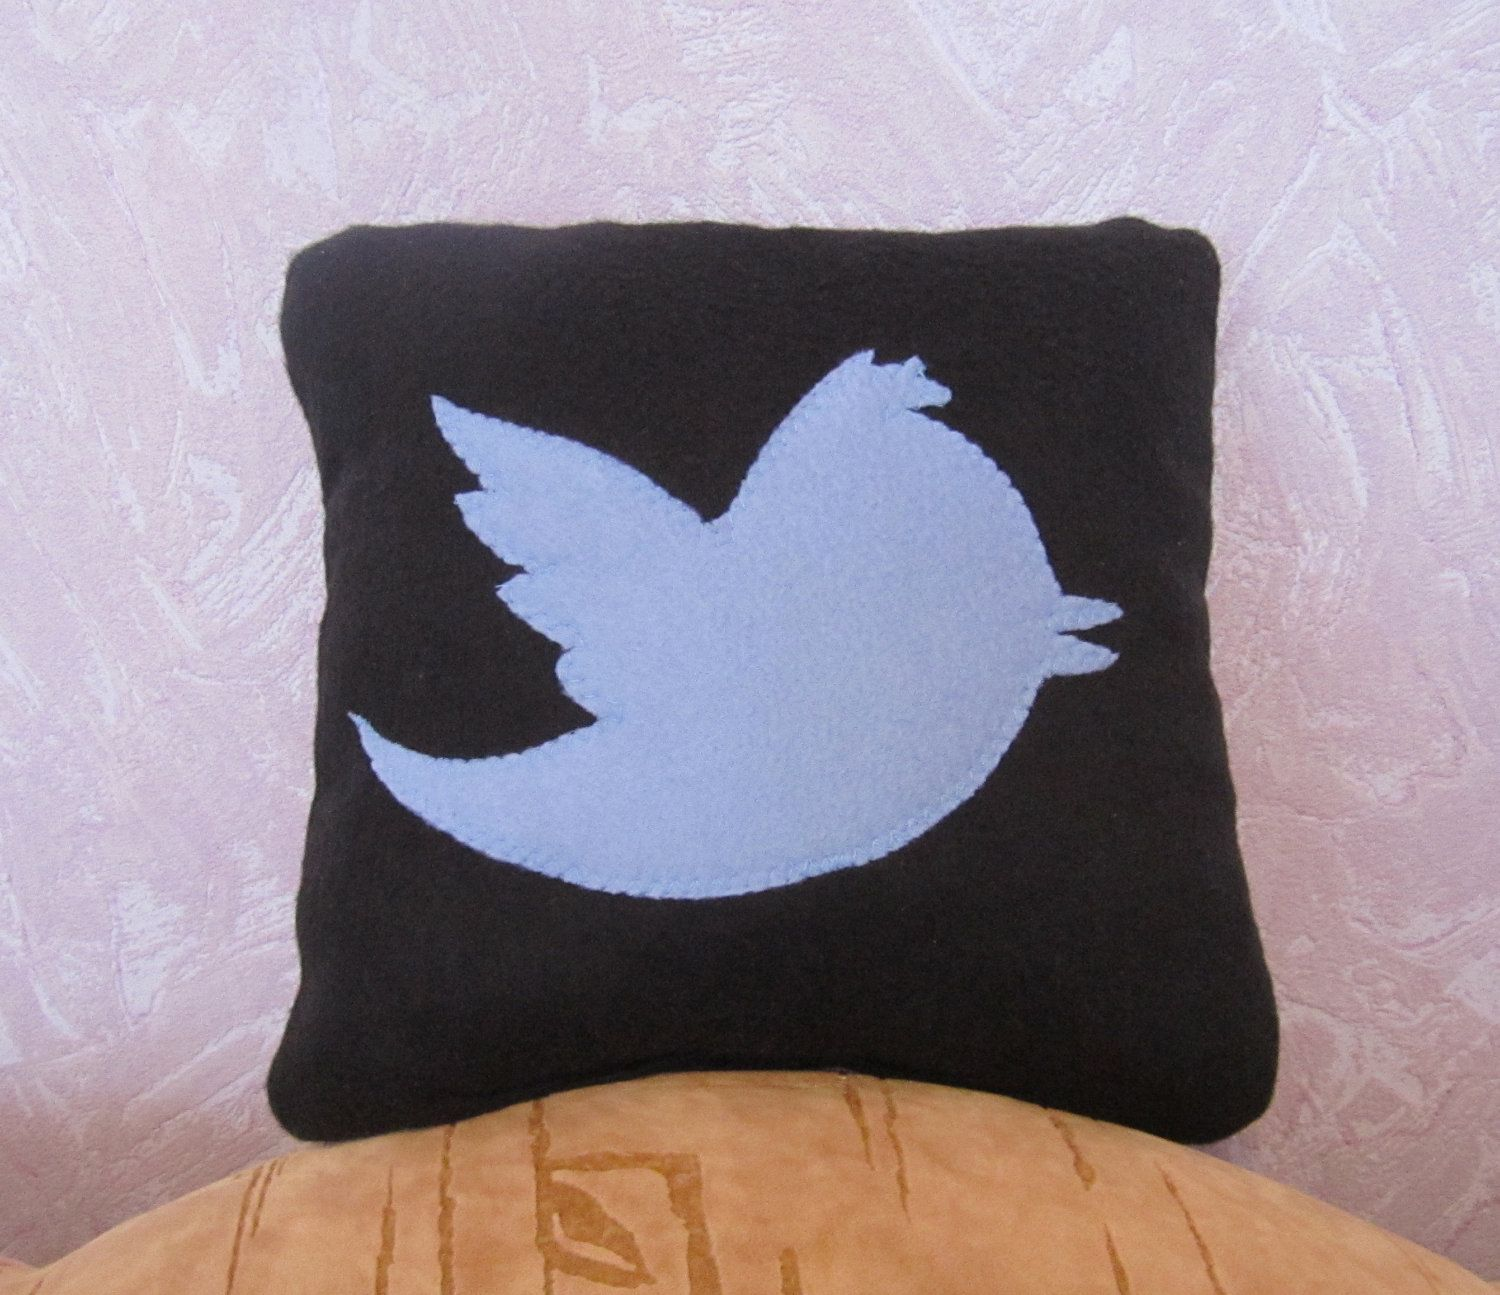 Twitter Pillow 12 X 12 Decorative Pillow Black Geekery Pillow 17 00 Via Etsy Pillows Decorative Pillows Geekery